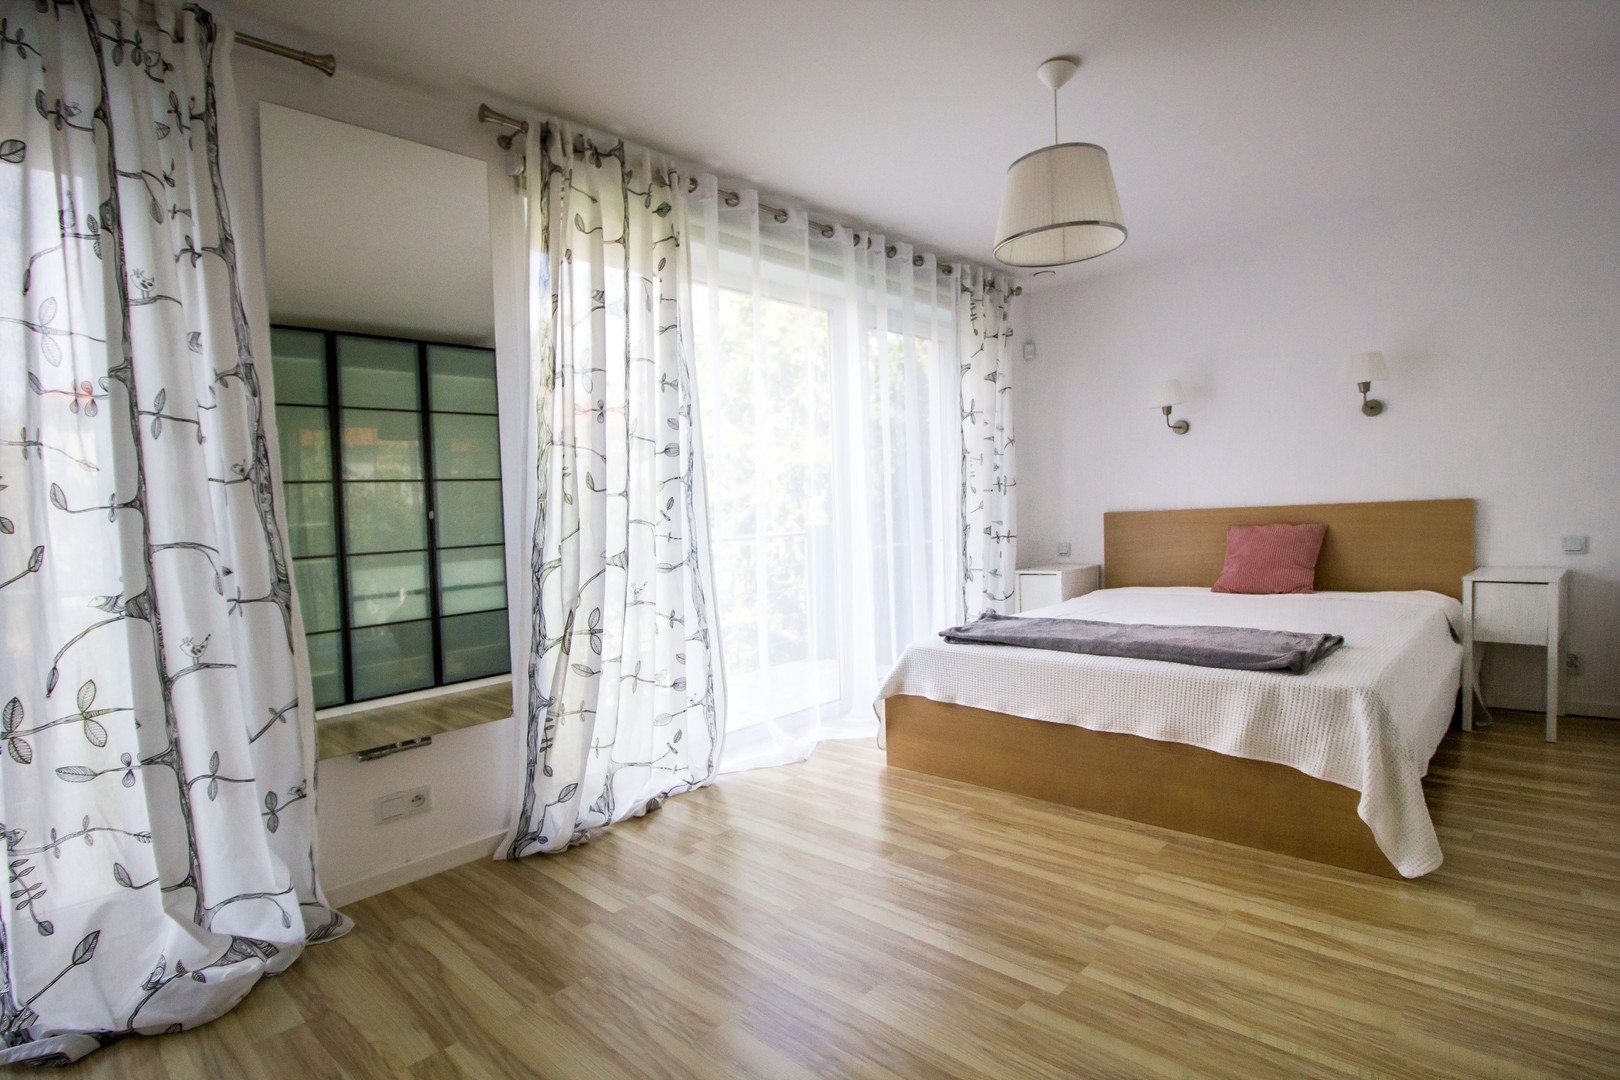 House for rent Poznan Poland (29 of 31).